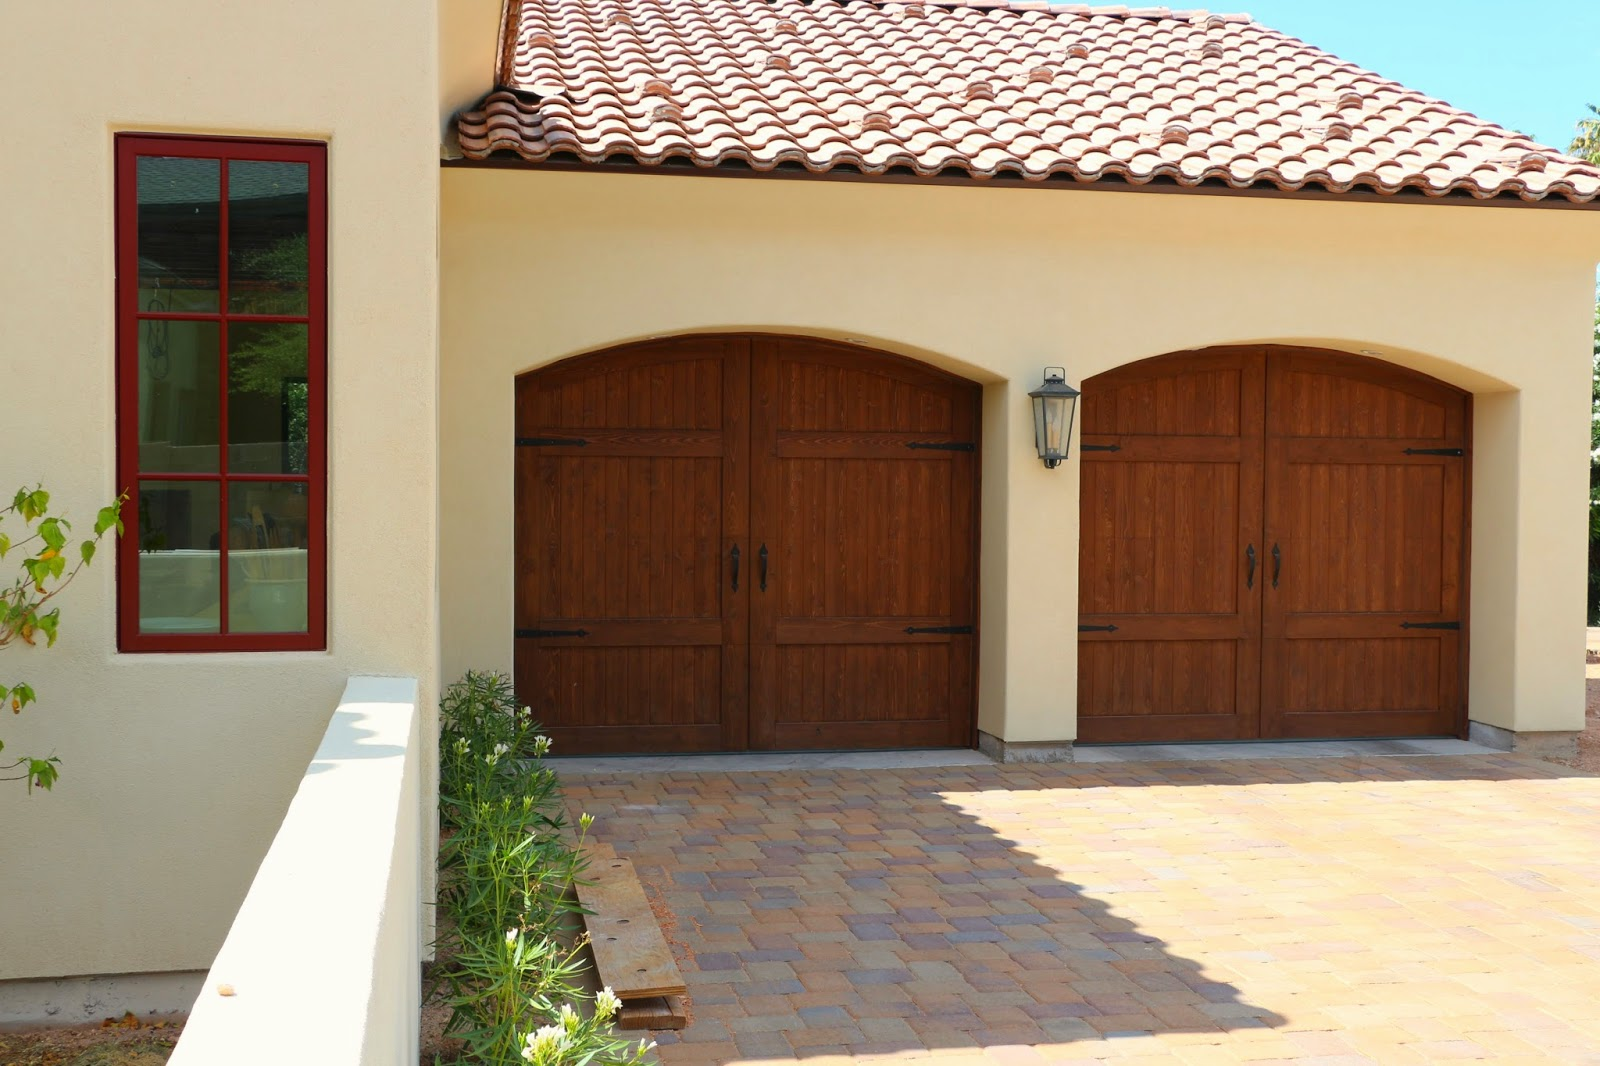 cedar garage doors, stained knotty cedar garage doors, wood rollup garage doors